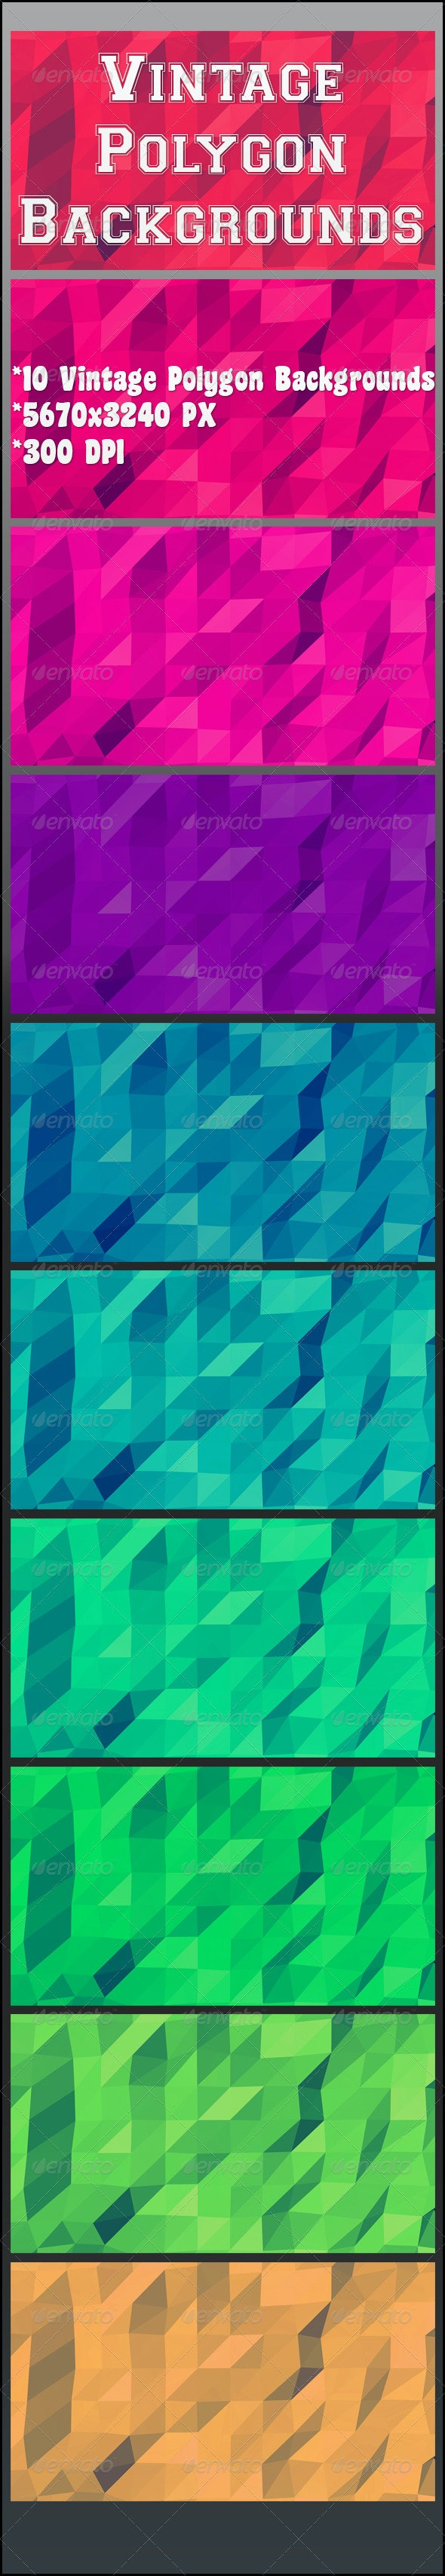 Vintage Polygon Backgrounds - Abstract Backgrounds